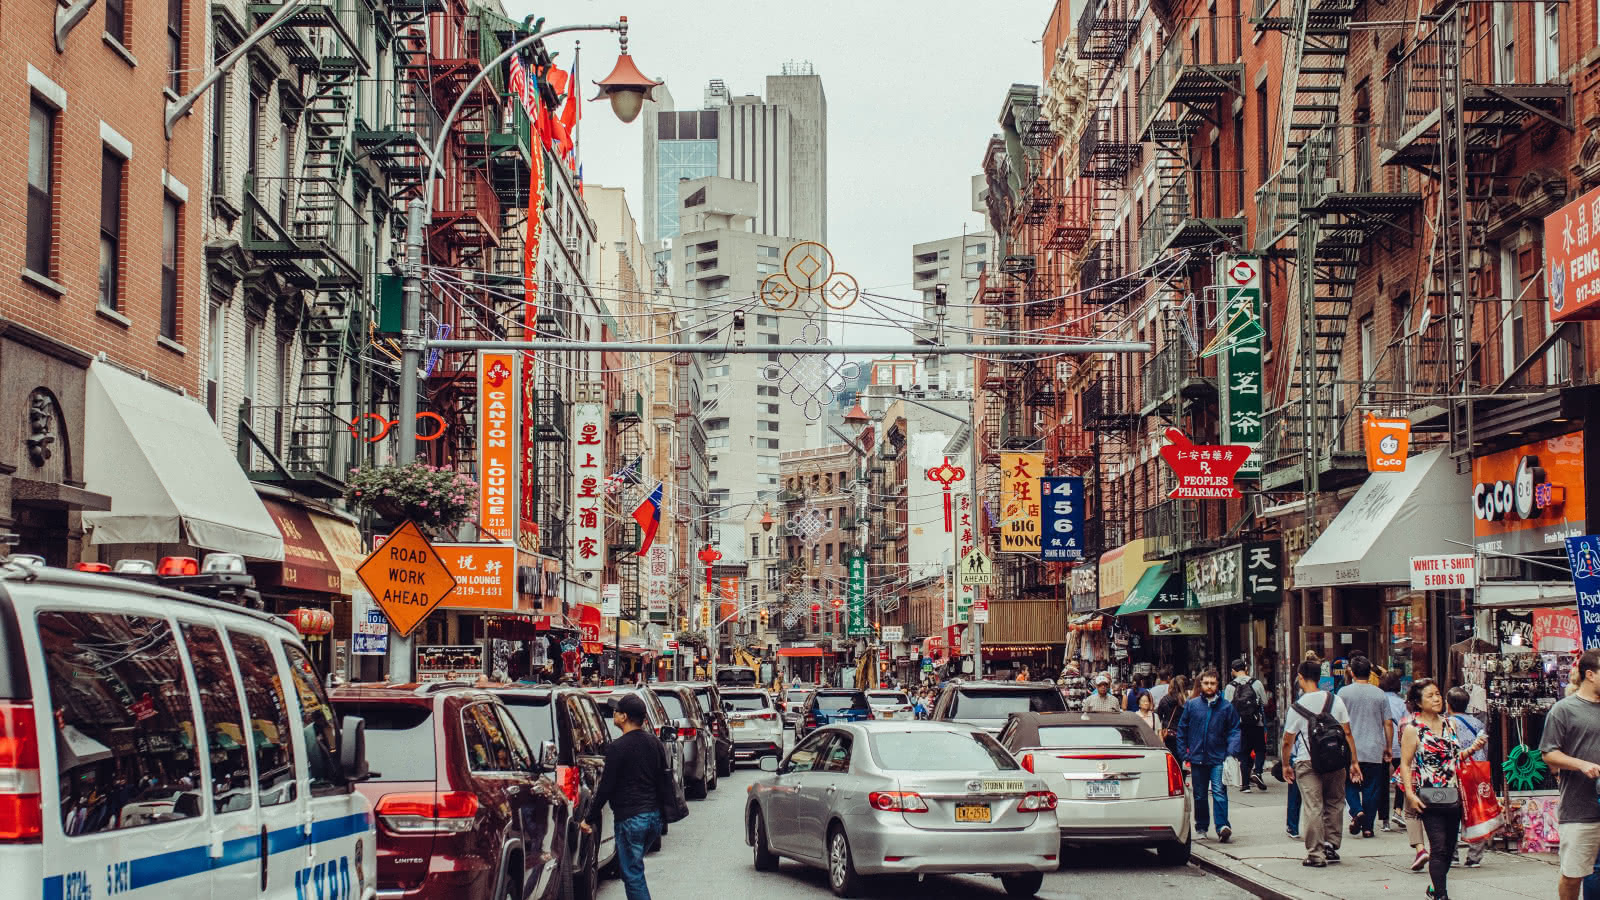 little italy and chinatown NYC